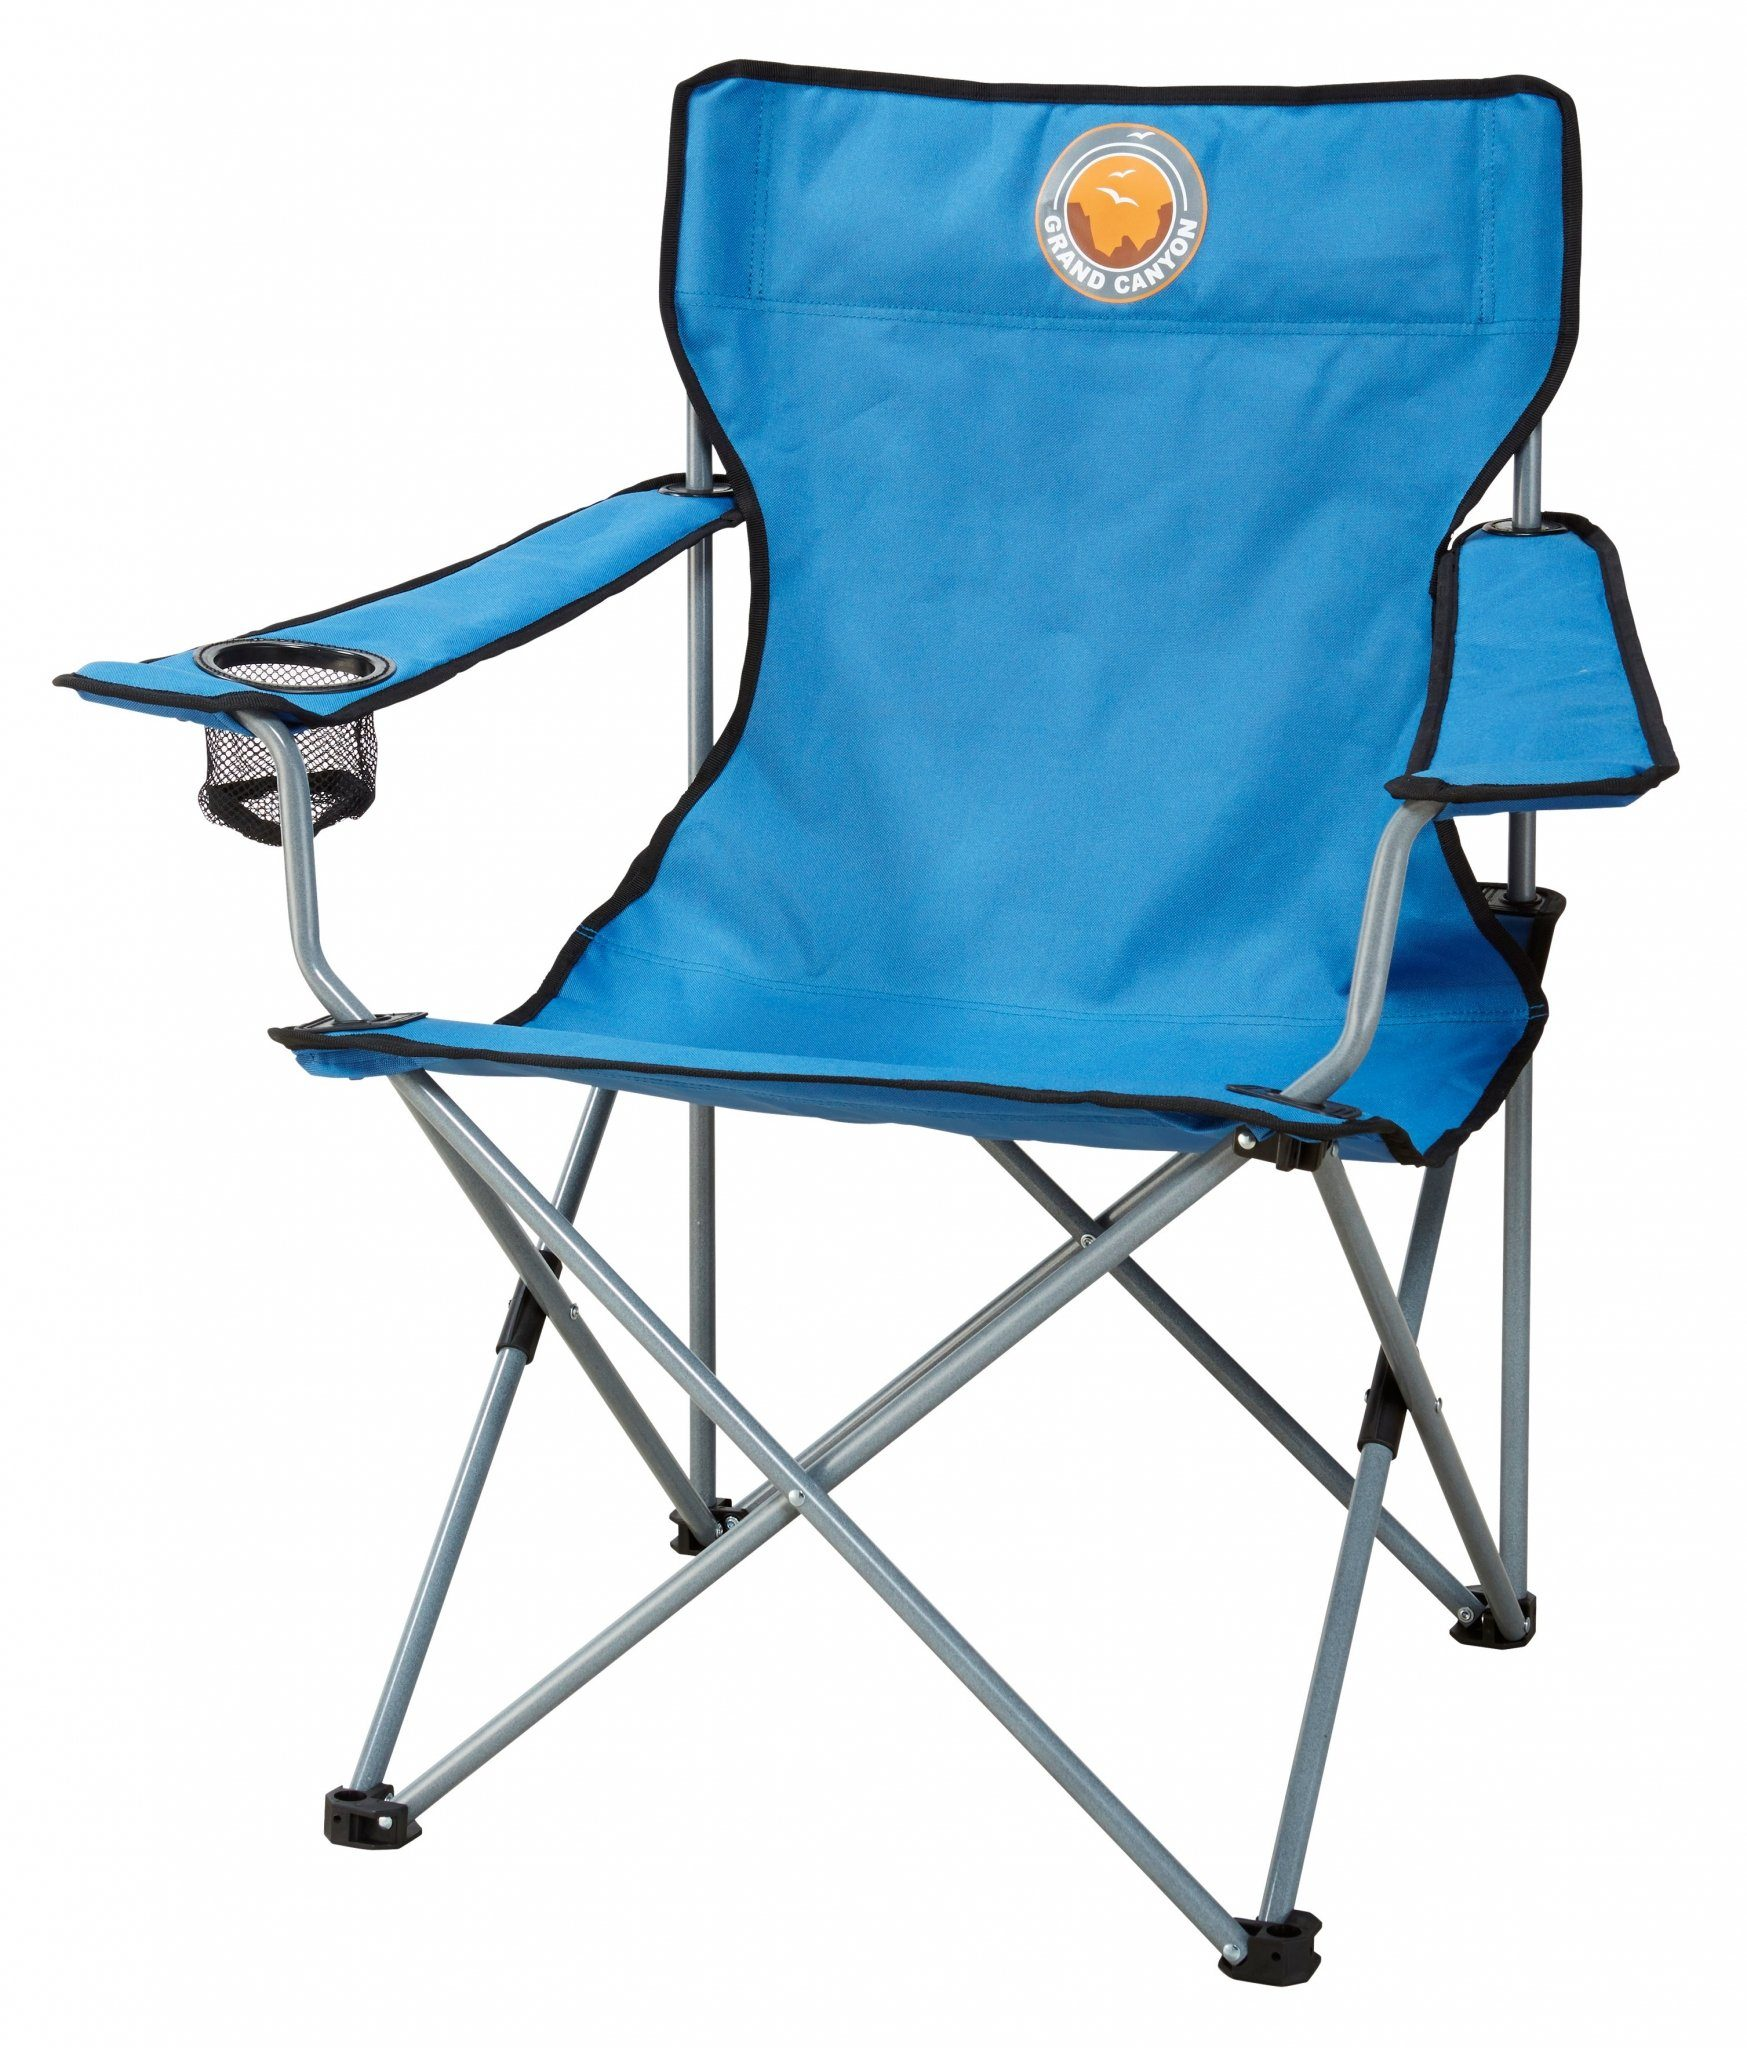 Grand Canyon Camping-Stuhl »Director Foldable Chair«